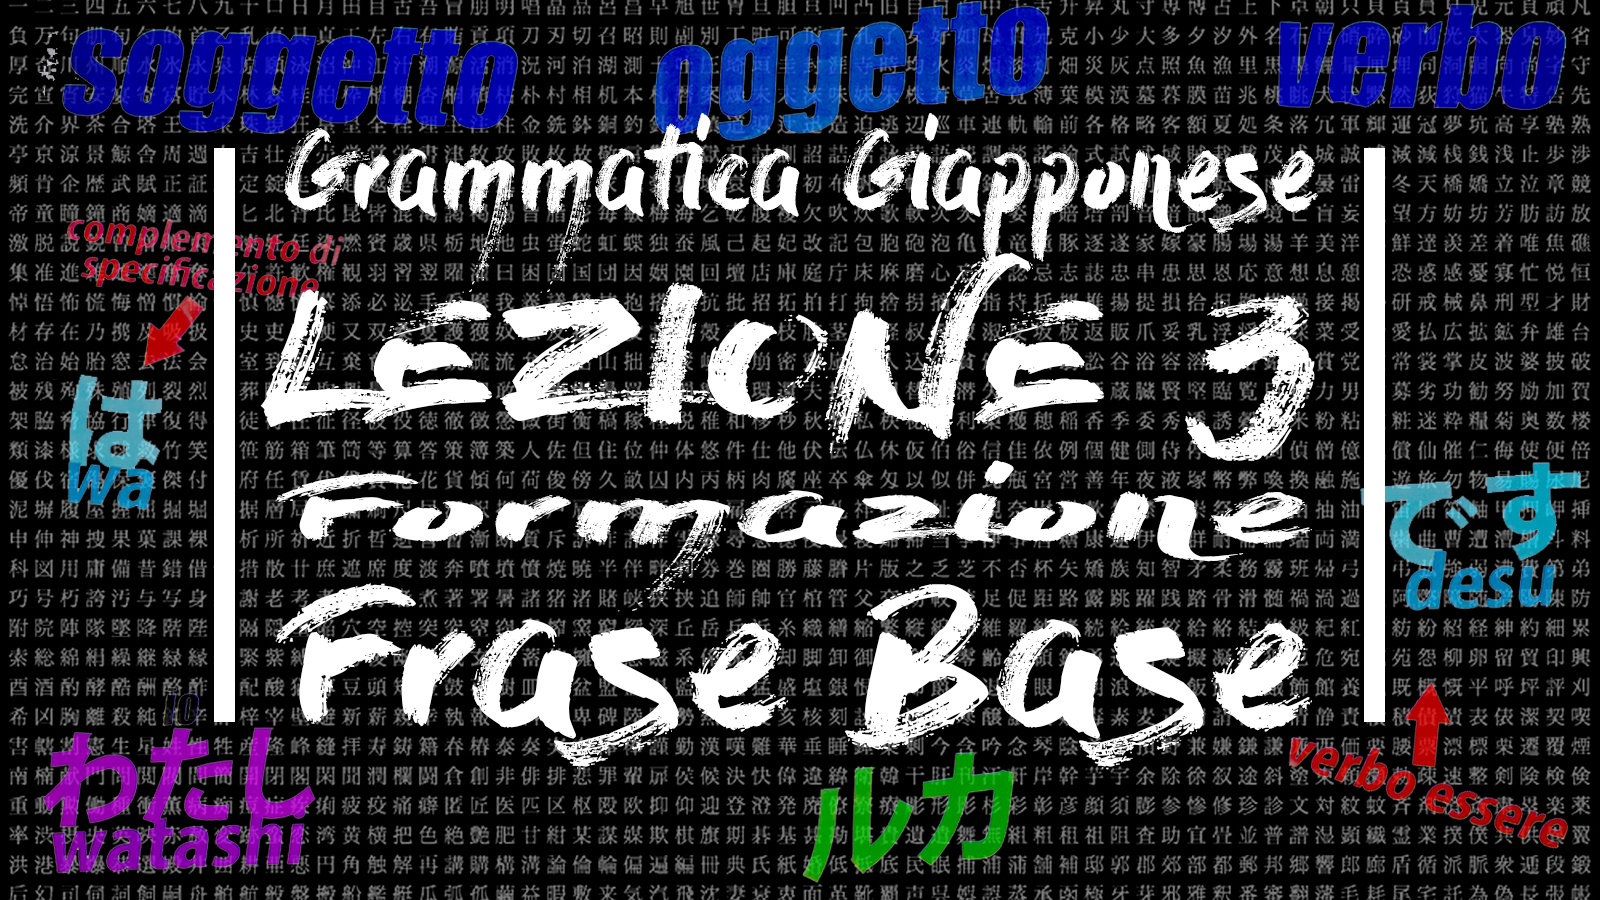 Lezione 03 - Composizione Frase Base Giapponese + EXTRA - The Japanese Dreams